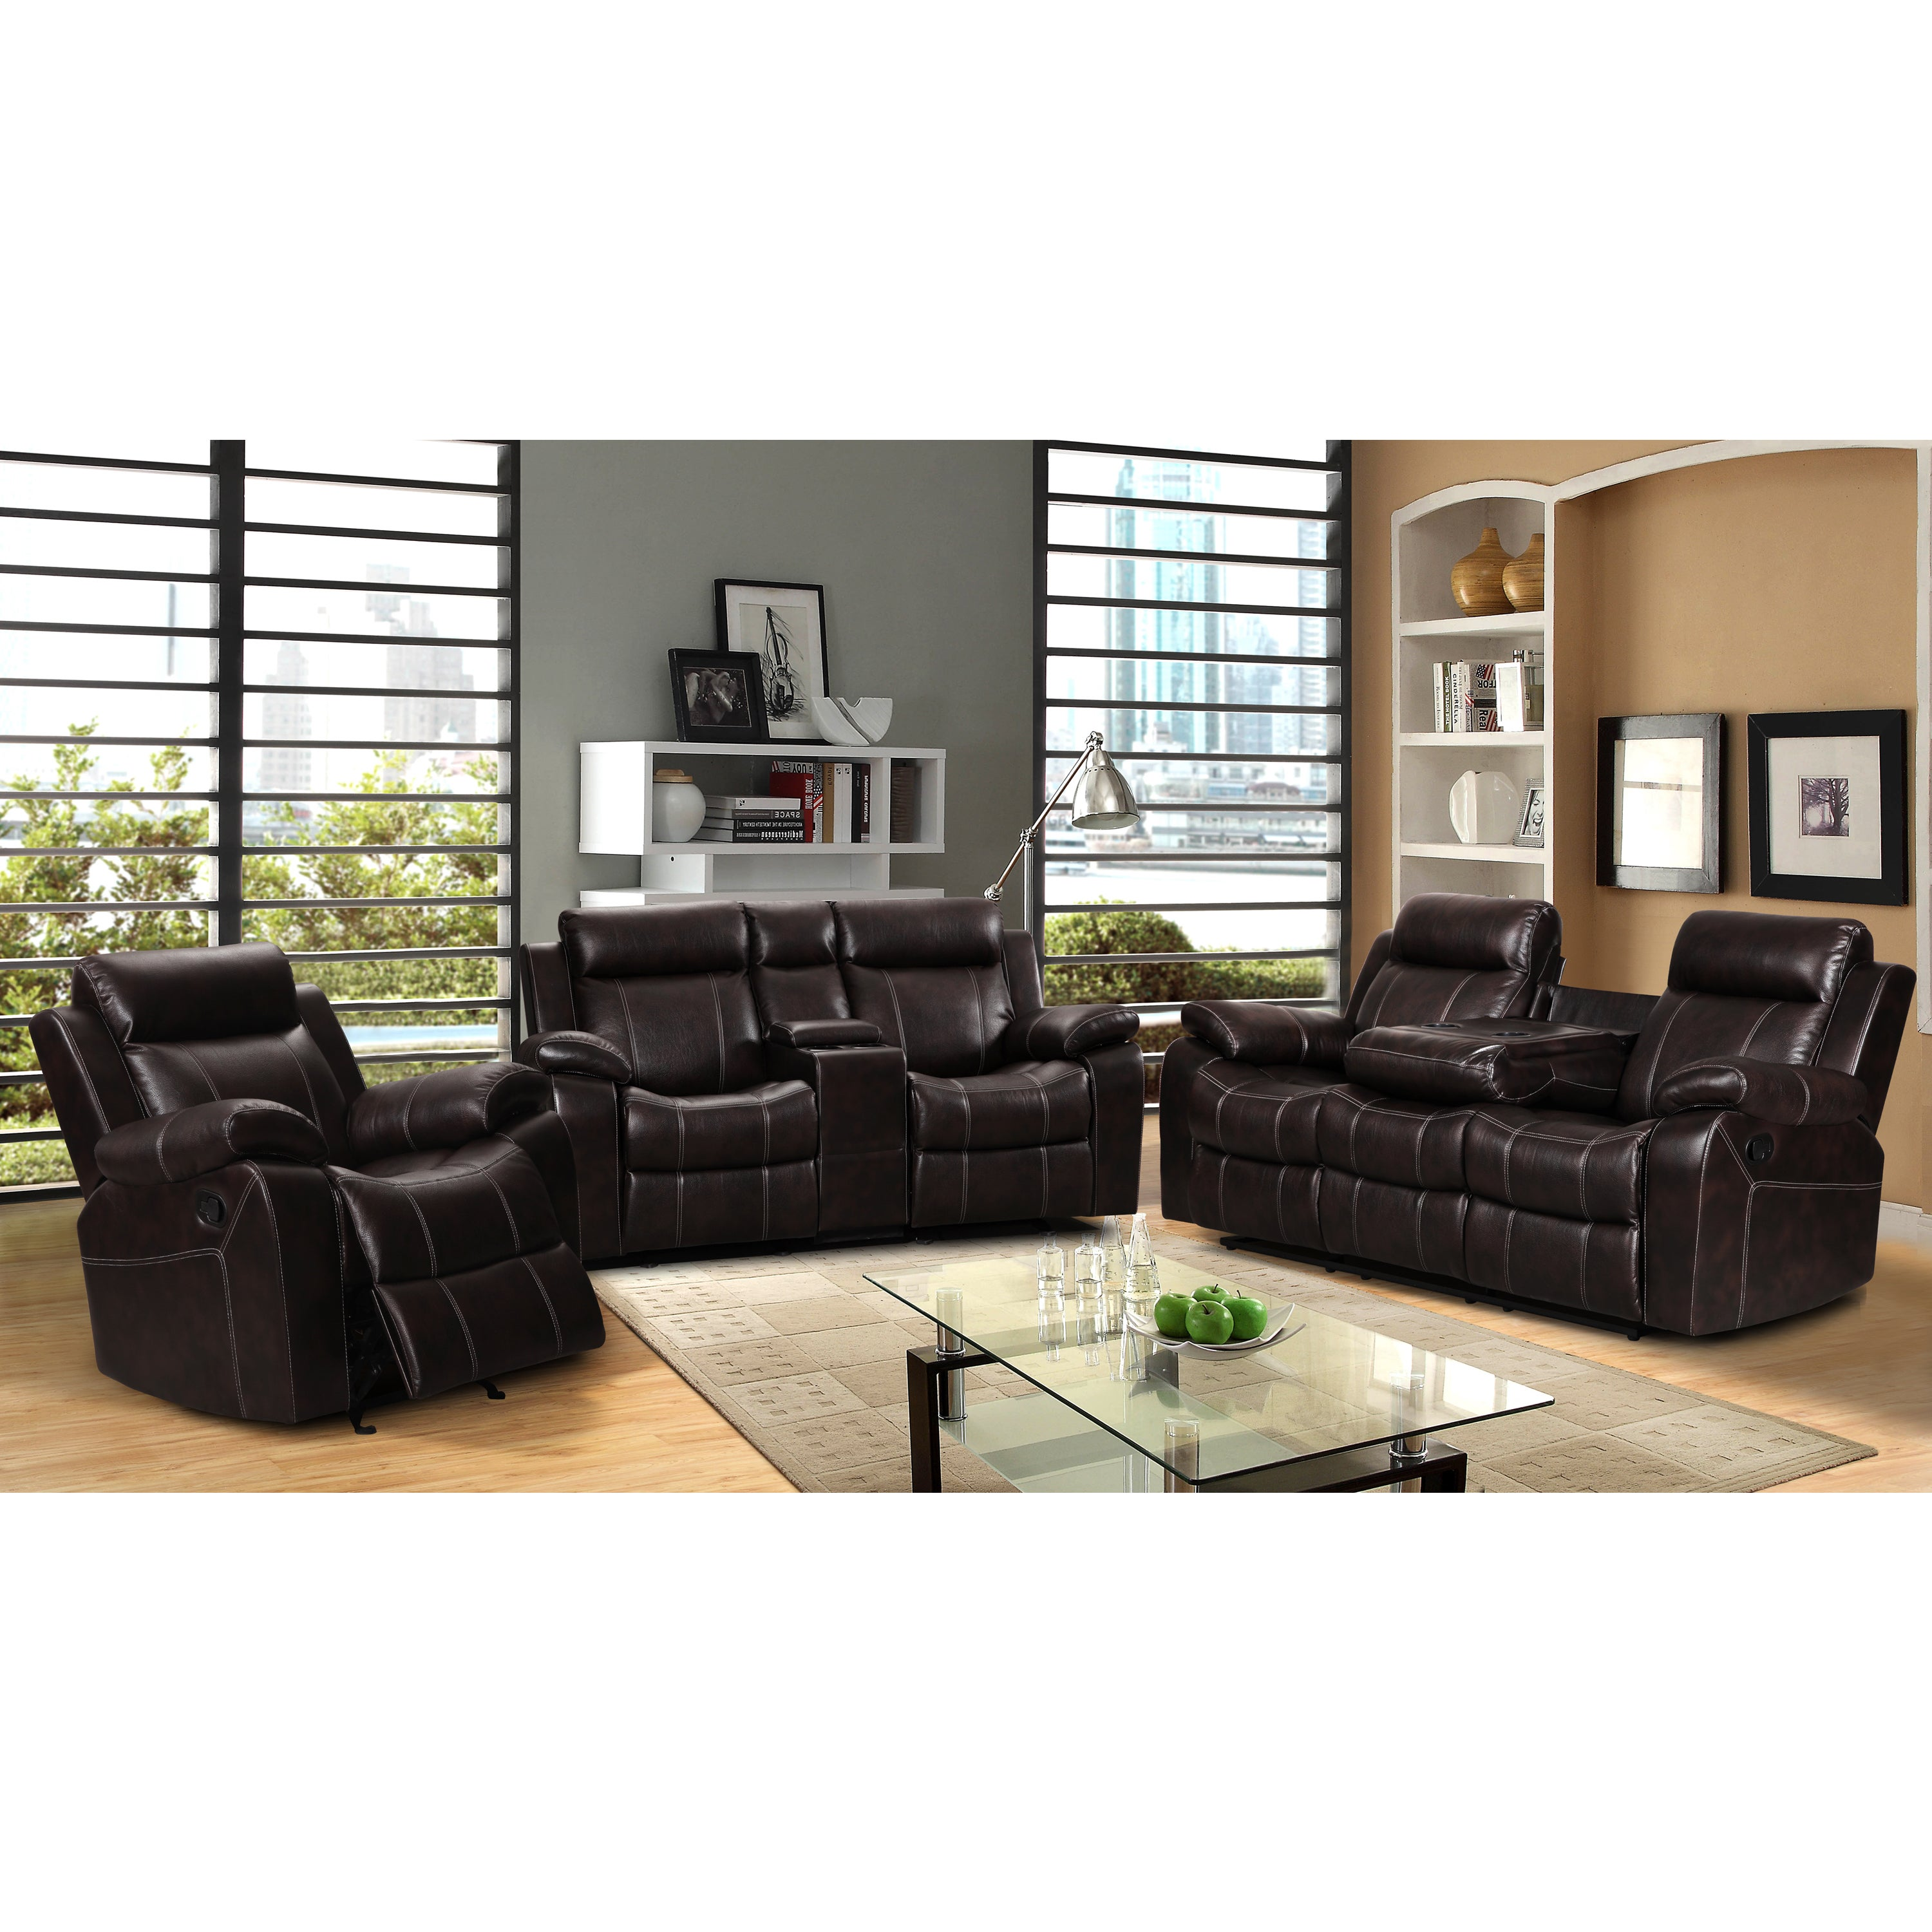 Brilliant Sherry Dark Brown Leather Air 3 Pc Reclining Sofa Set And Rocking Chair Alphanode Cool Chair Designs And Ideas Alphanodeonline